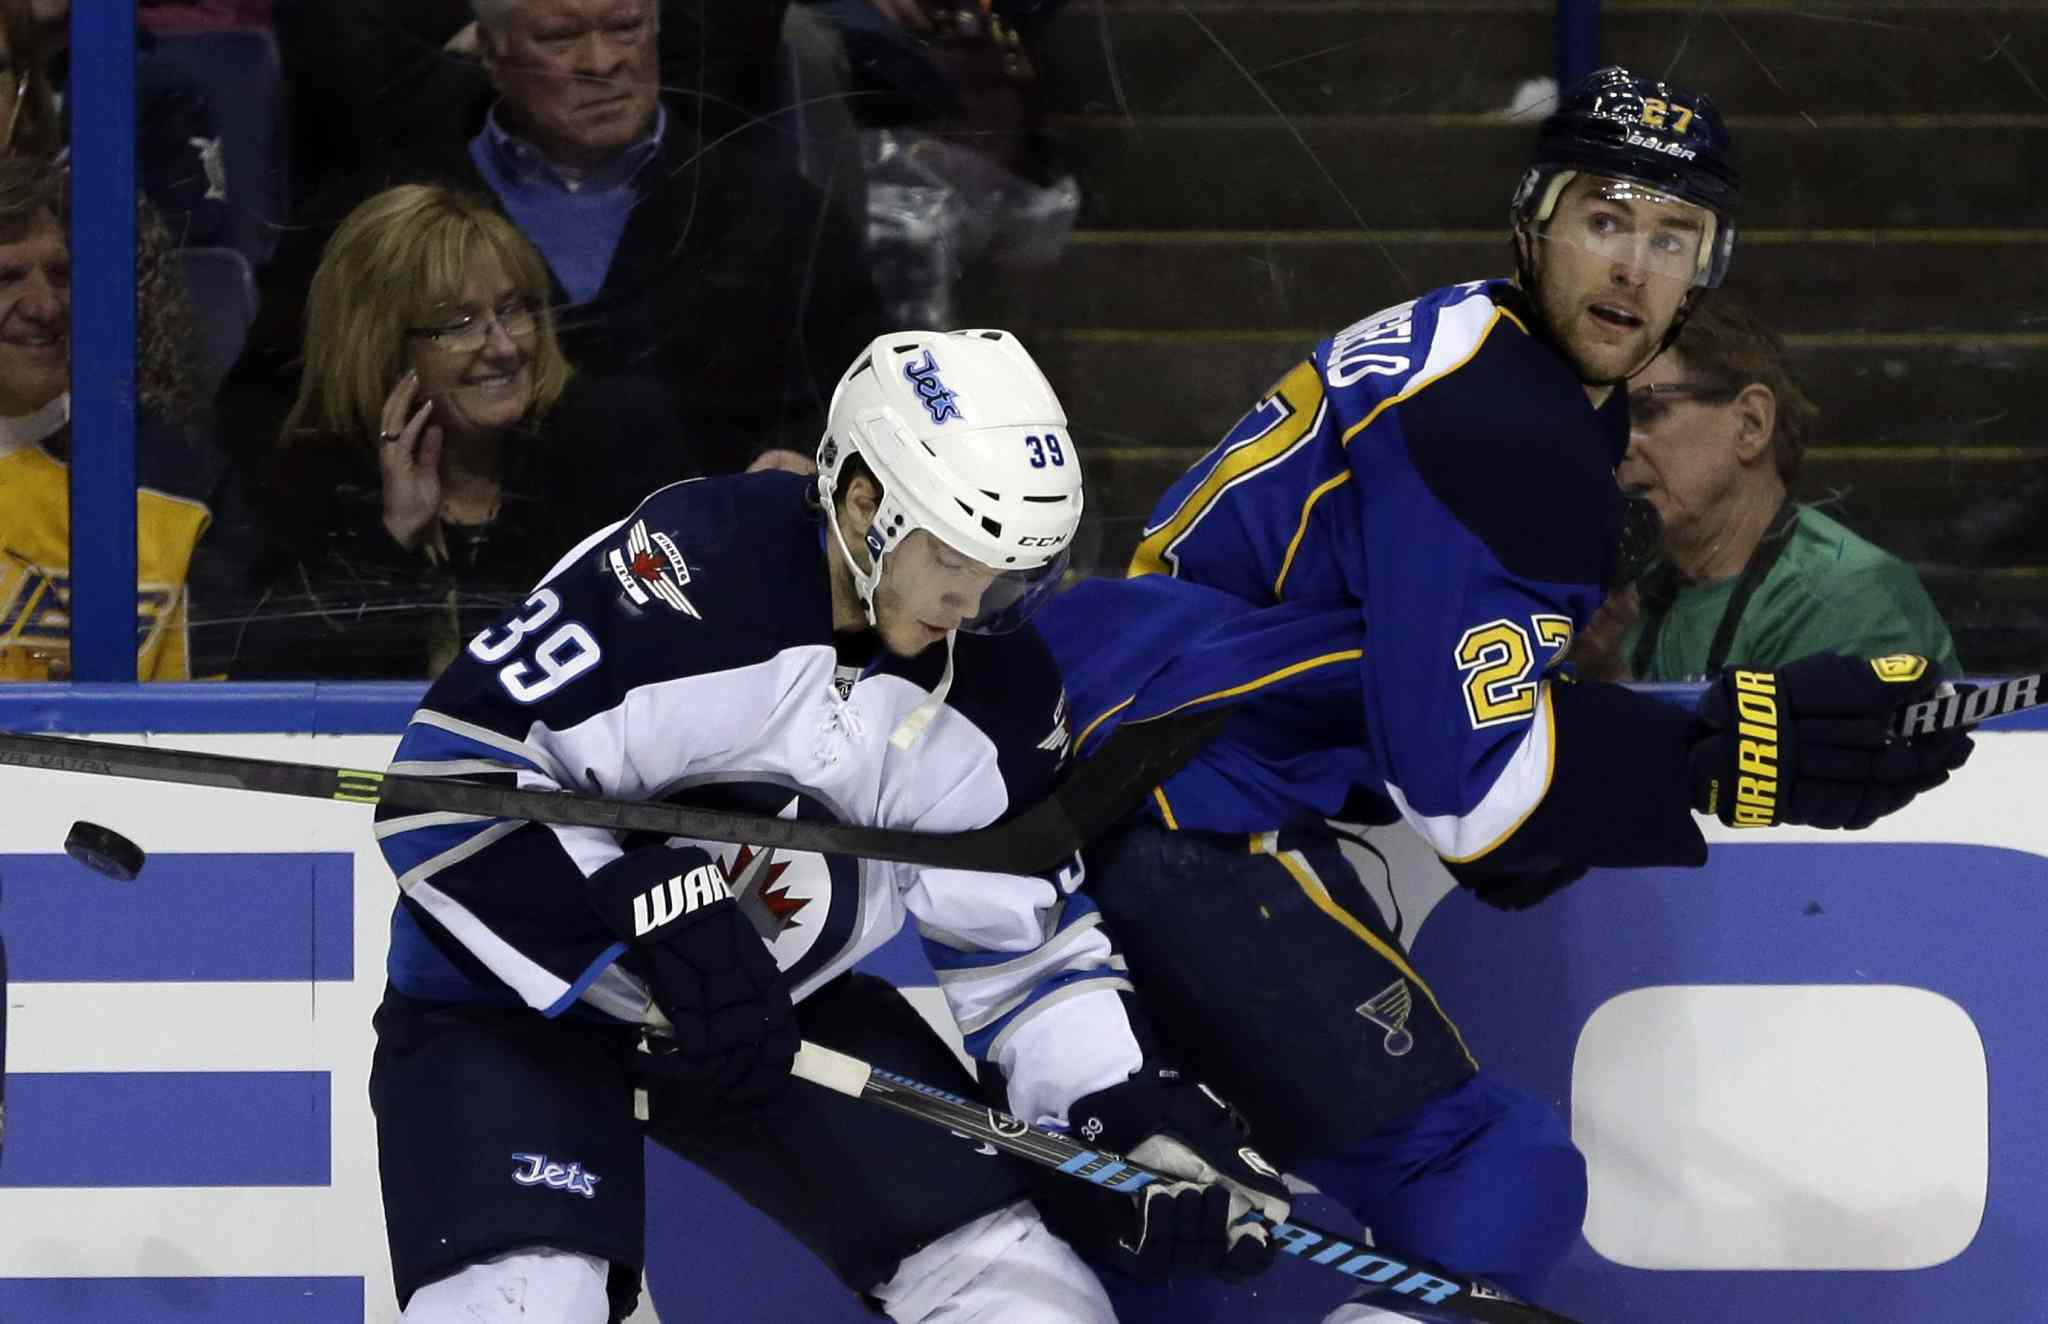 Jets defenceman Tobias Enstrom and Blues defenceman Alex Pietrangelo chase after a loose puck in the second period.